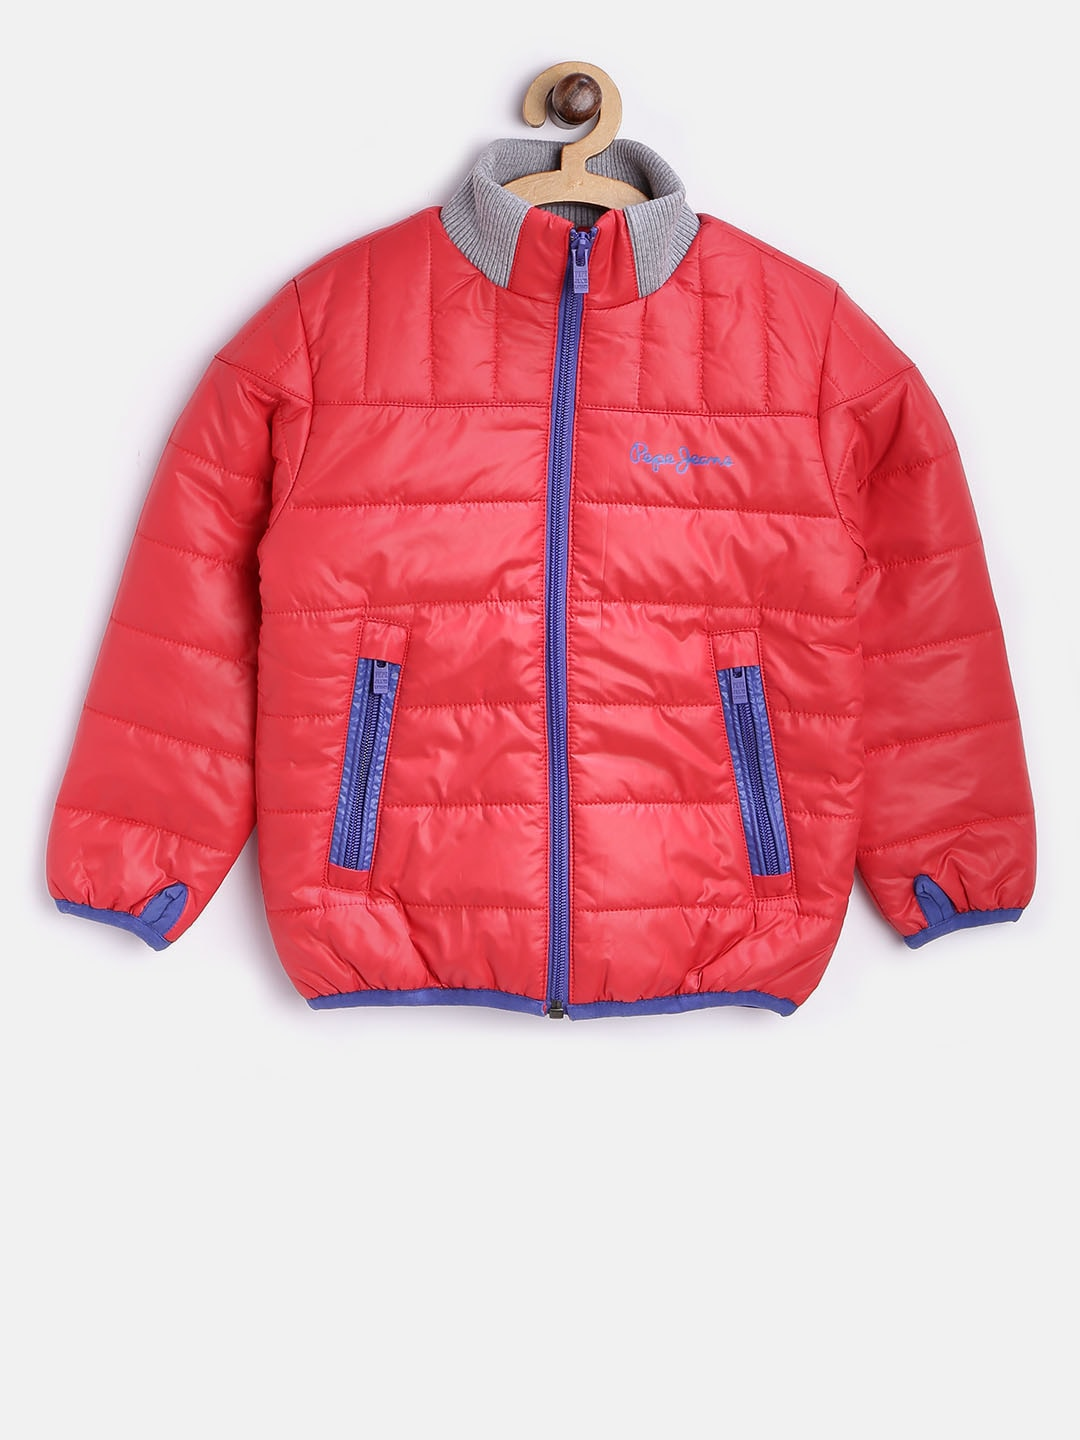 1a8bbfd8d426 Buy Pepe Jeans Boys Red Bomber Jacket - Jackets for Boys 2125765 ...